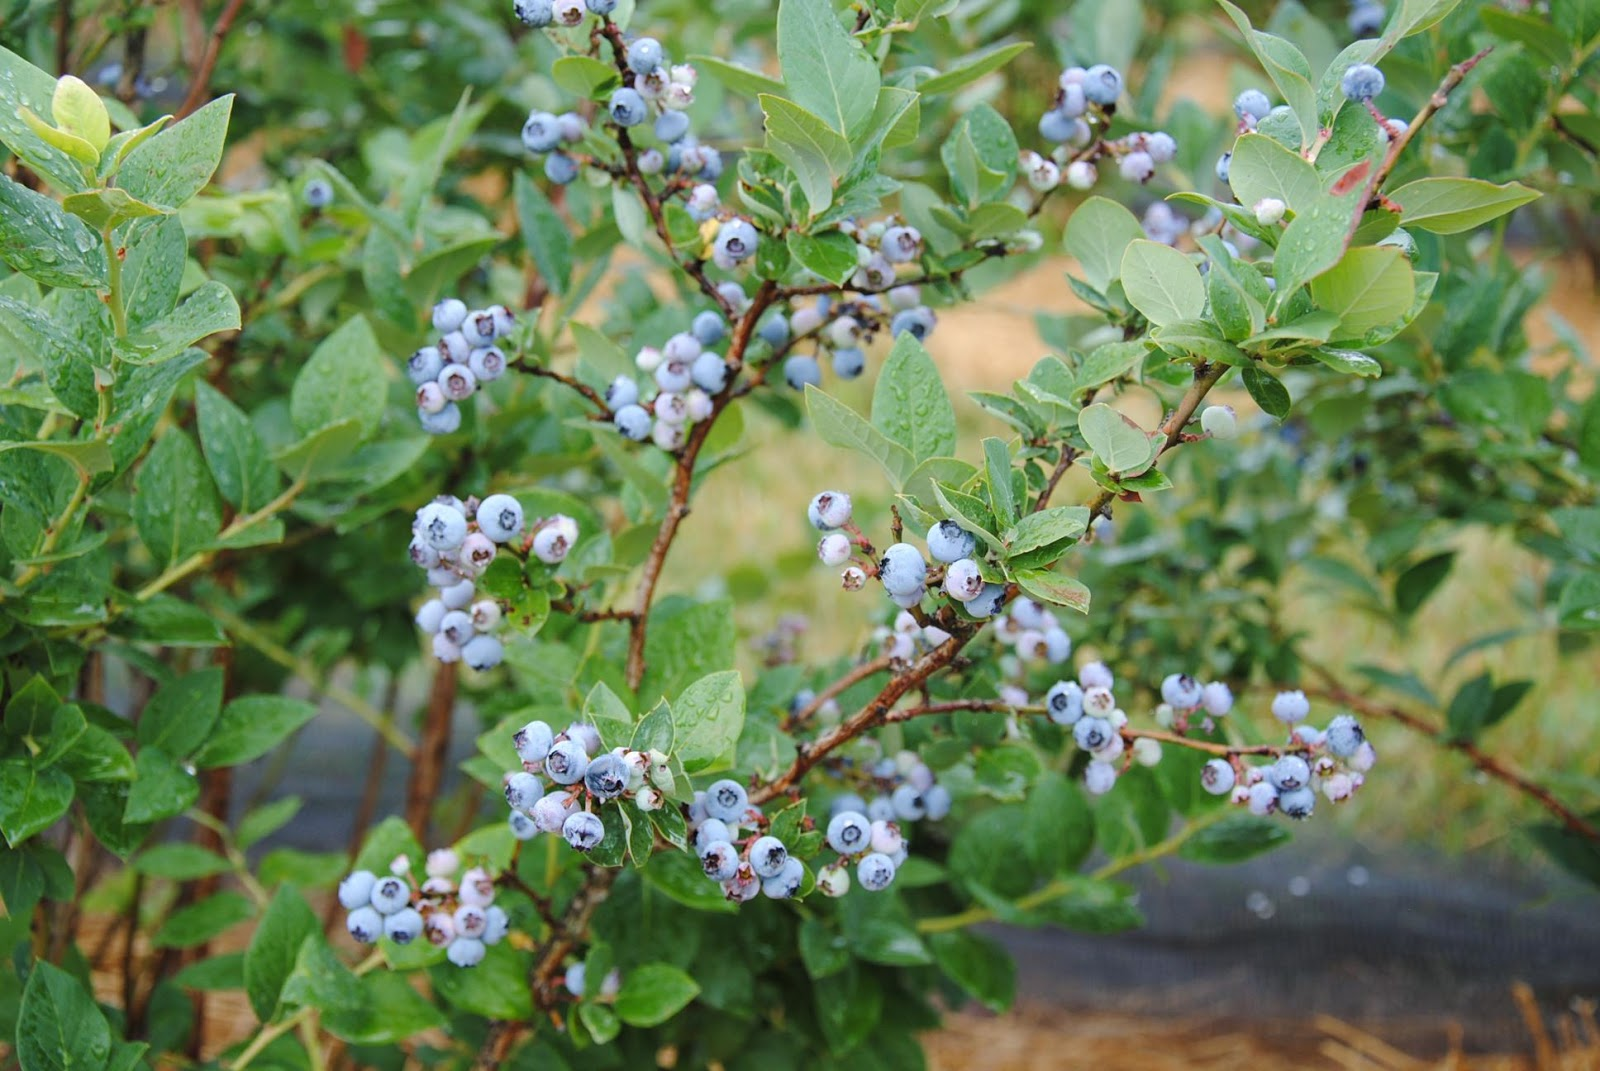 close-up of a blueberry plant